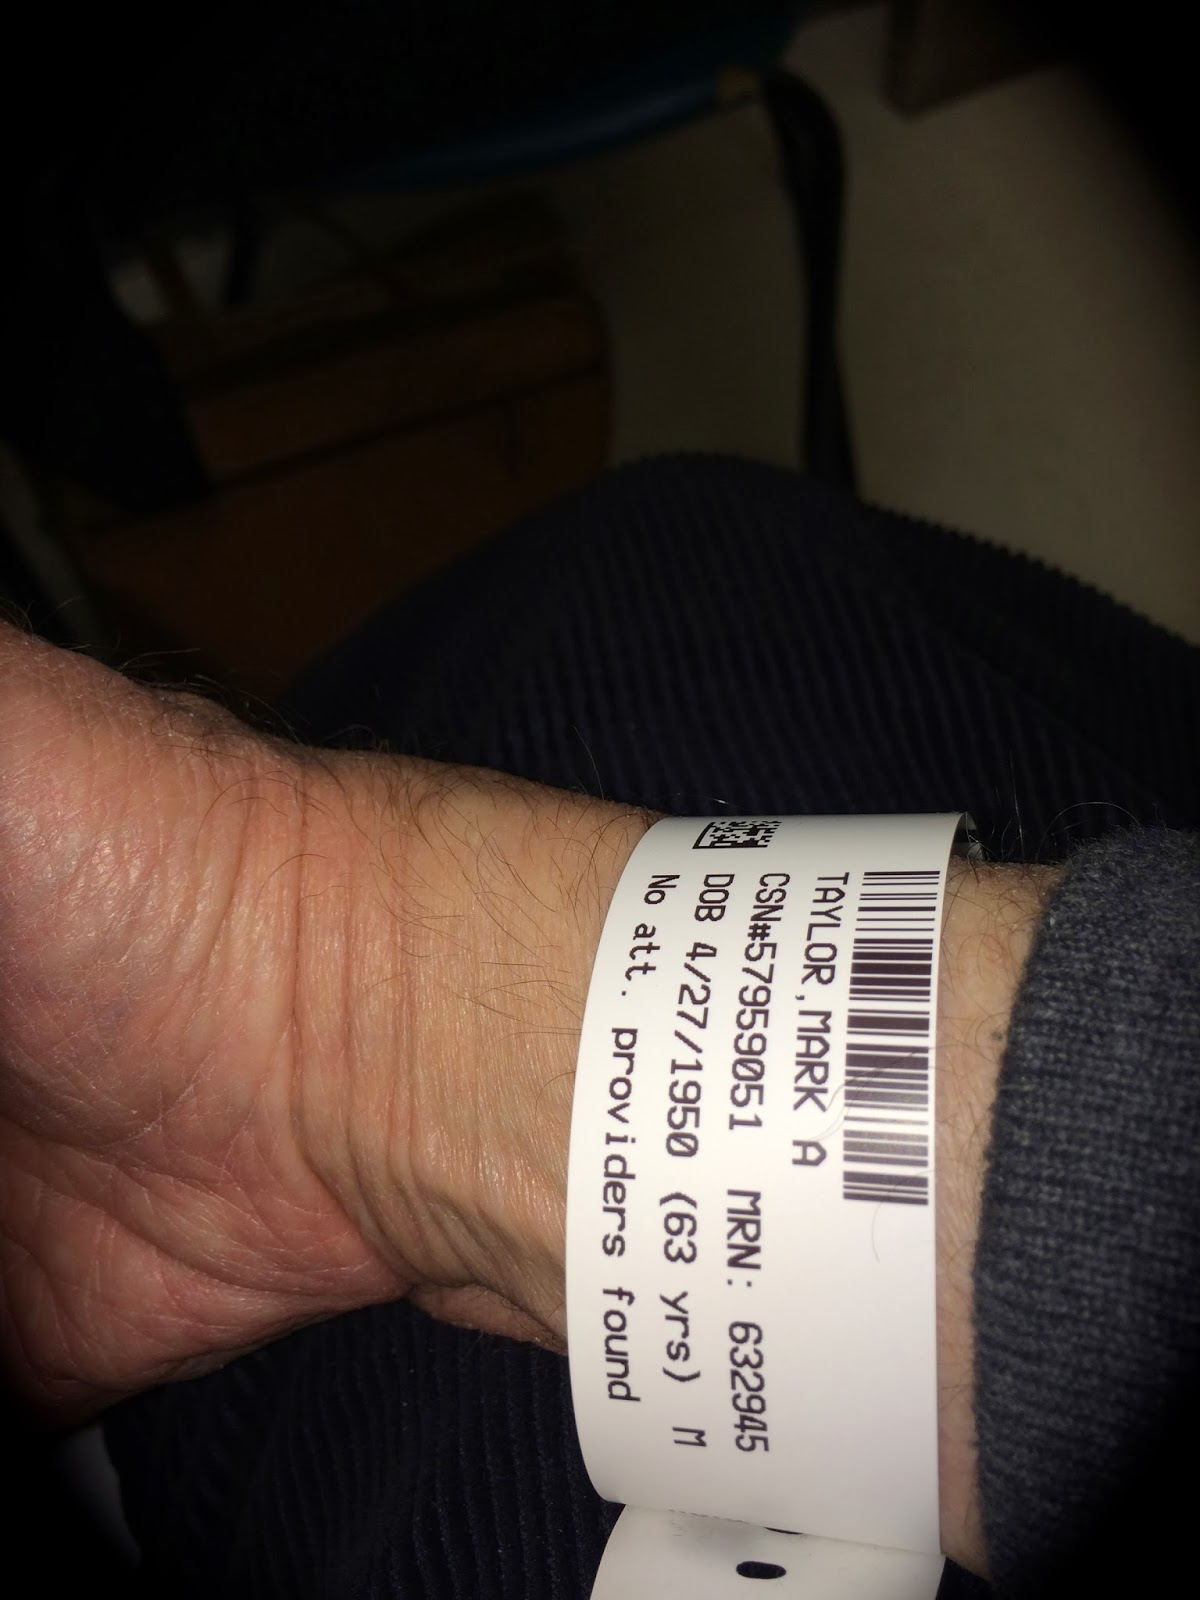 Here S The Pic I Sned Of My Hospital Bracelet At Bethesda North Emergency Room Where Went For Treatment After Slipping On Ice Breakfast And